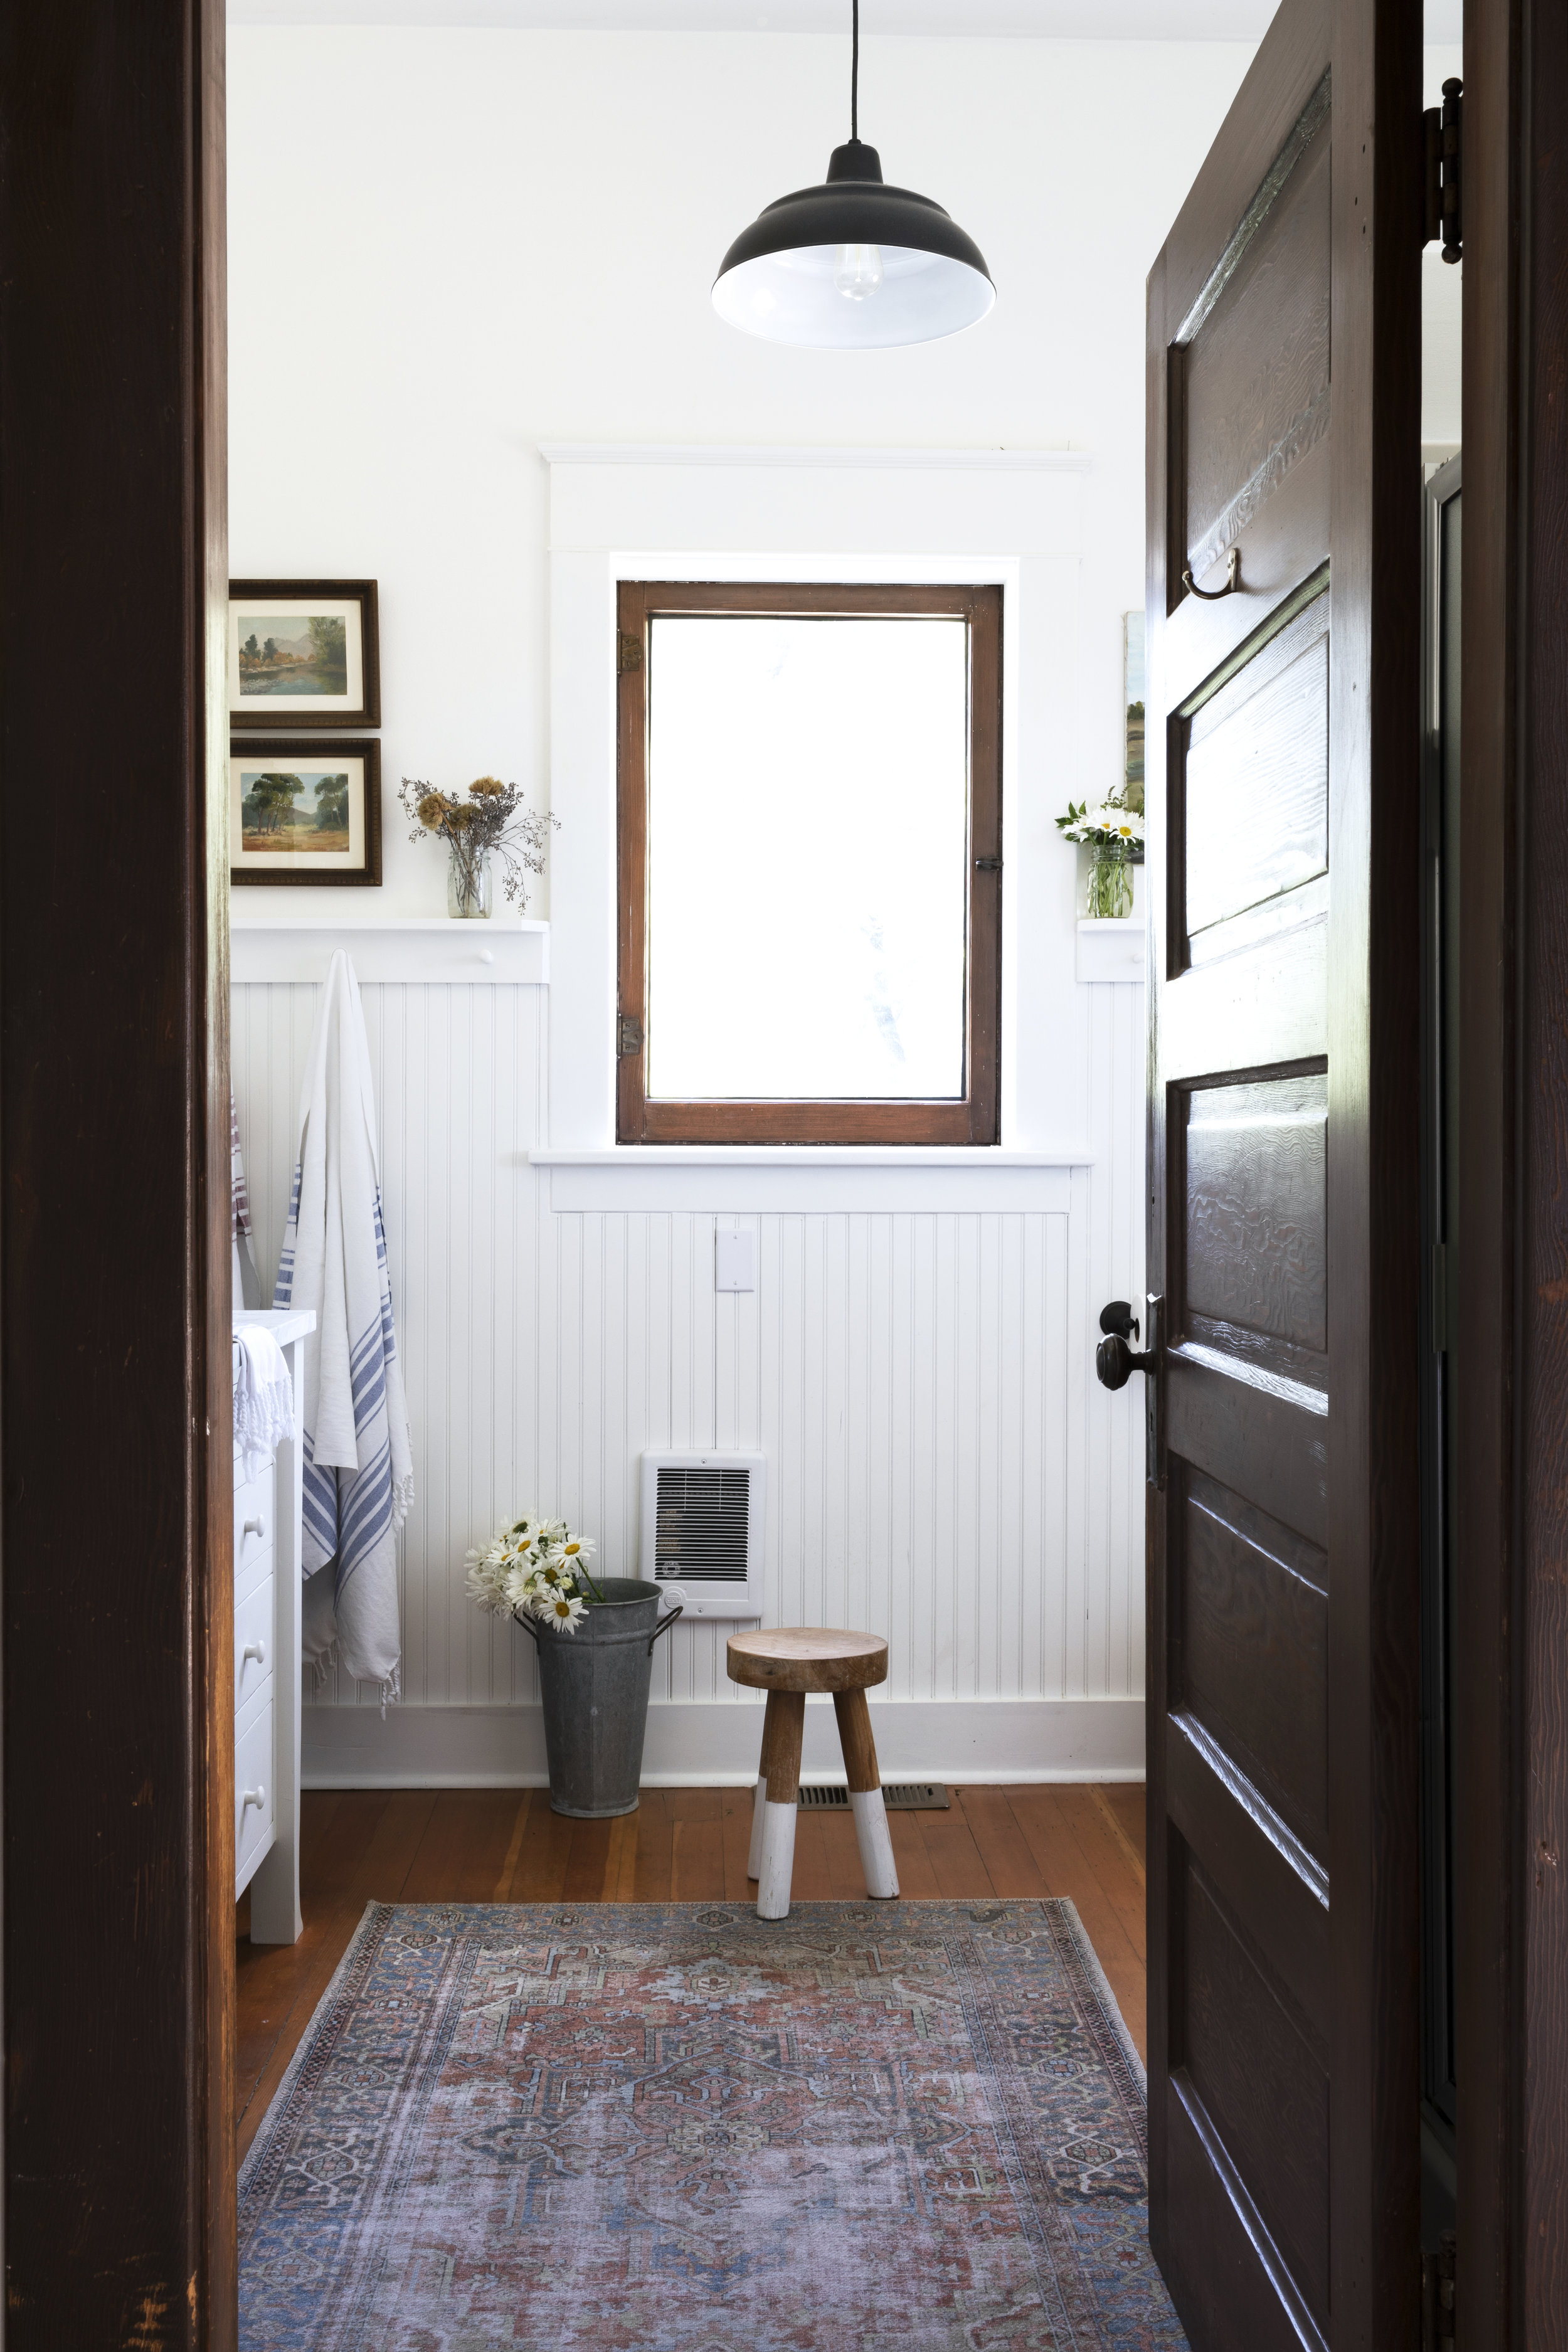 The Grit and Polish - Farmhouse Bathroom Potty Training 3.jpg